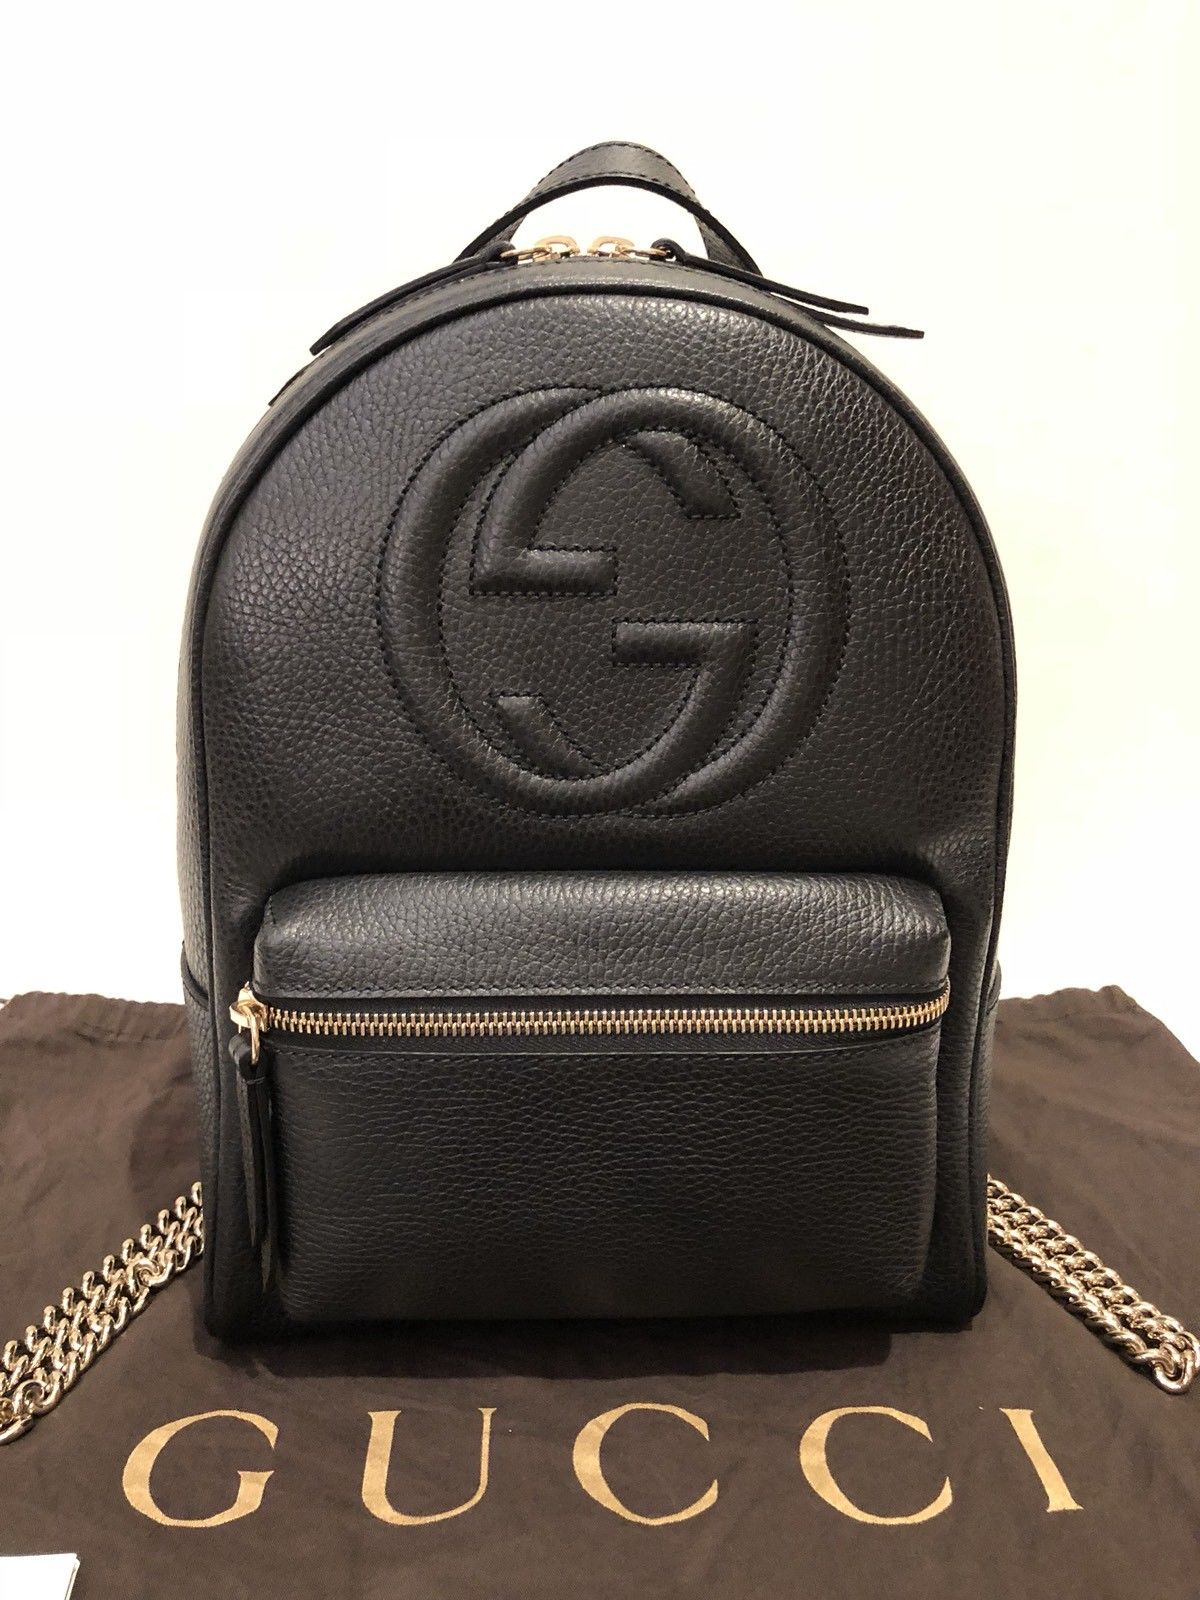 Gucci Soho Chain Black Leather Backpack – Remy Barnes Consignment a2ae01f3de2ac